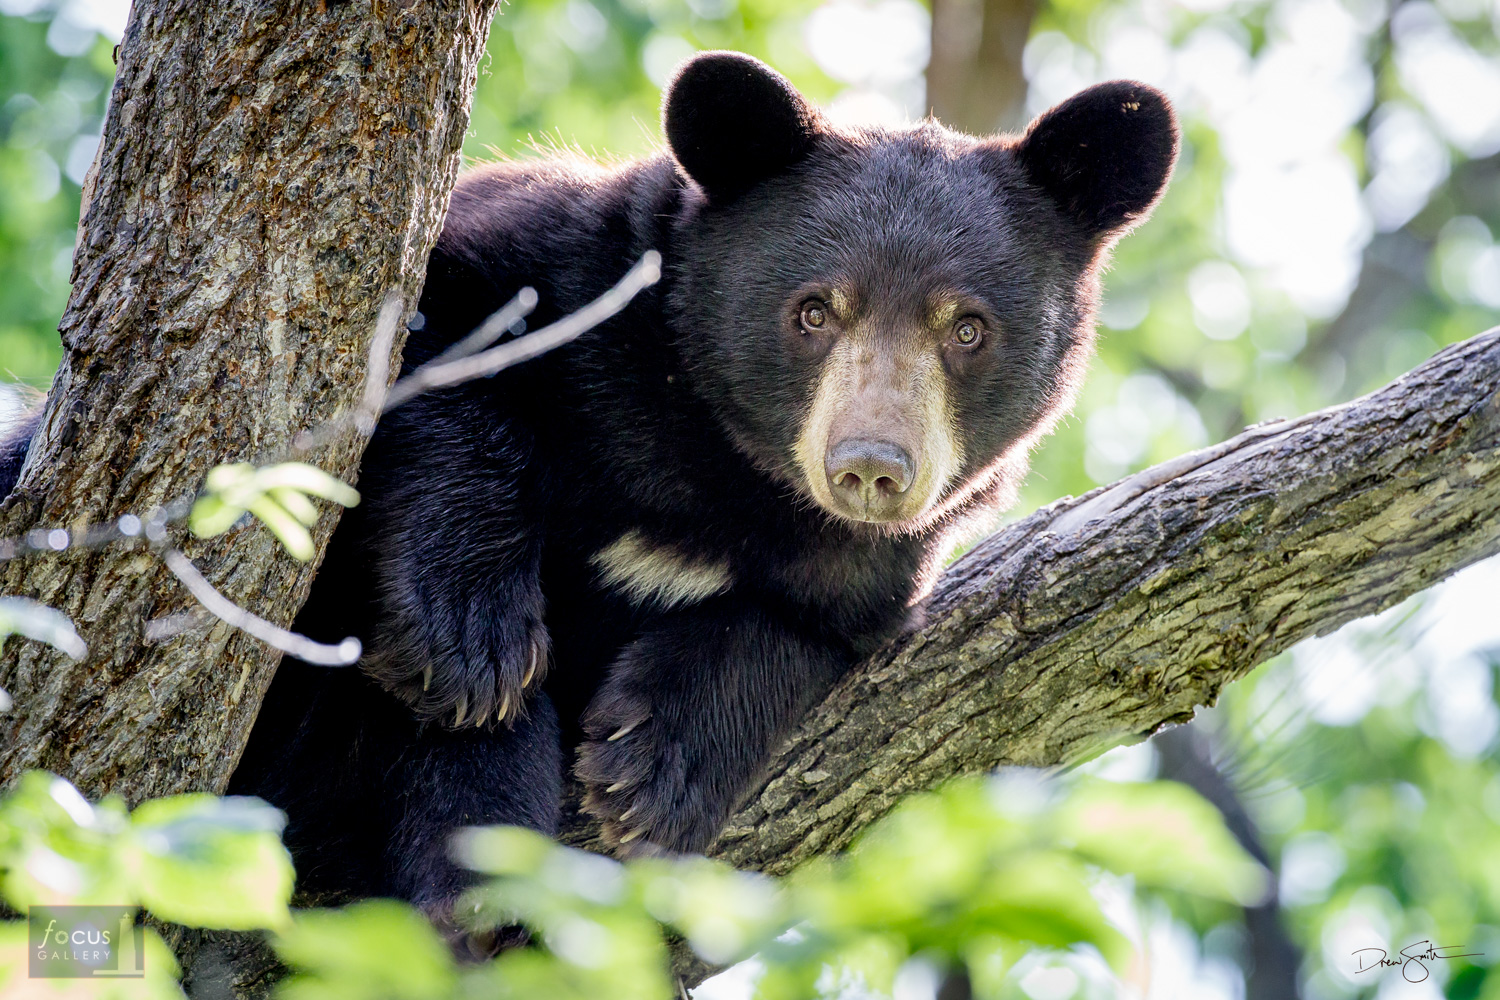 Young black bear in a tree.